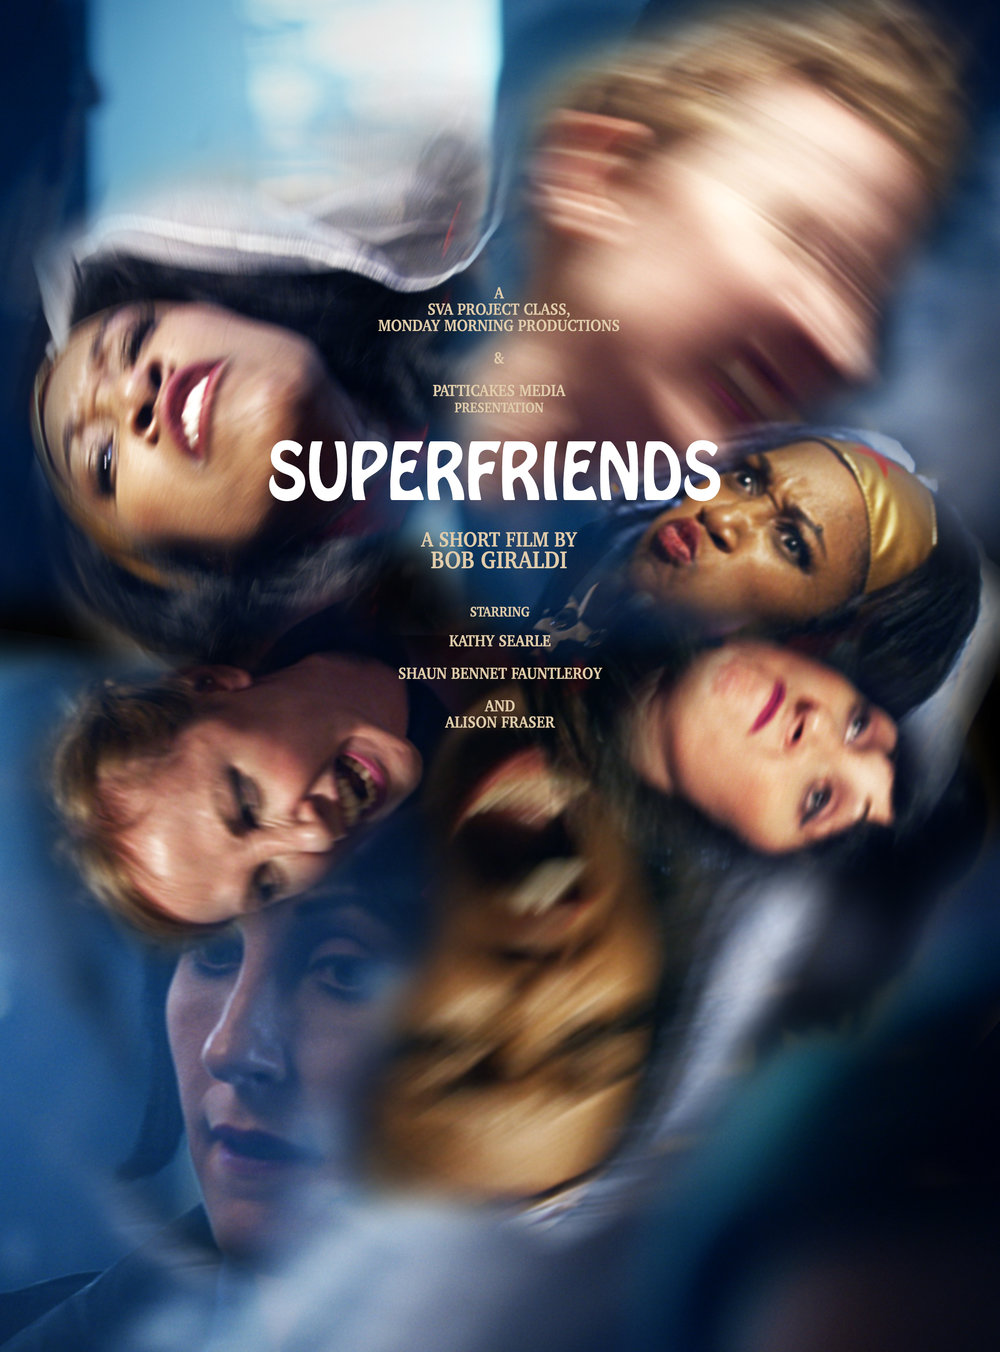 superfriends poster2.jpg